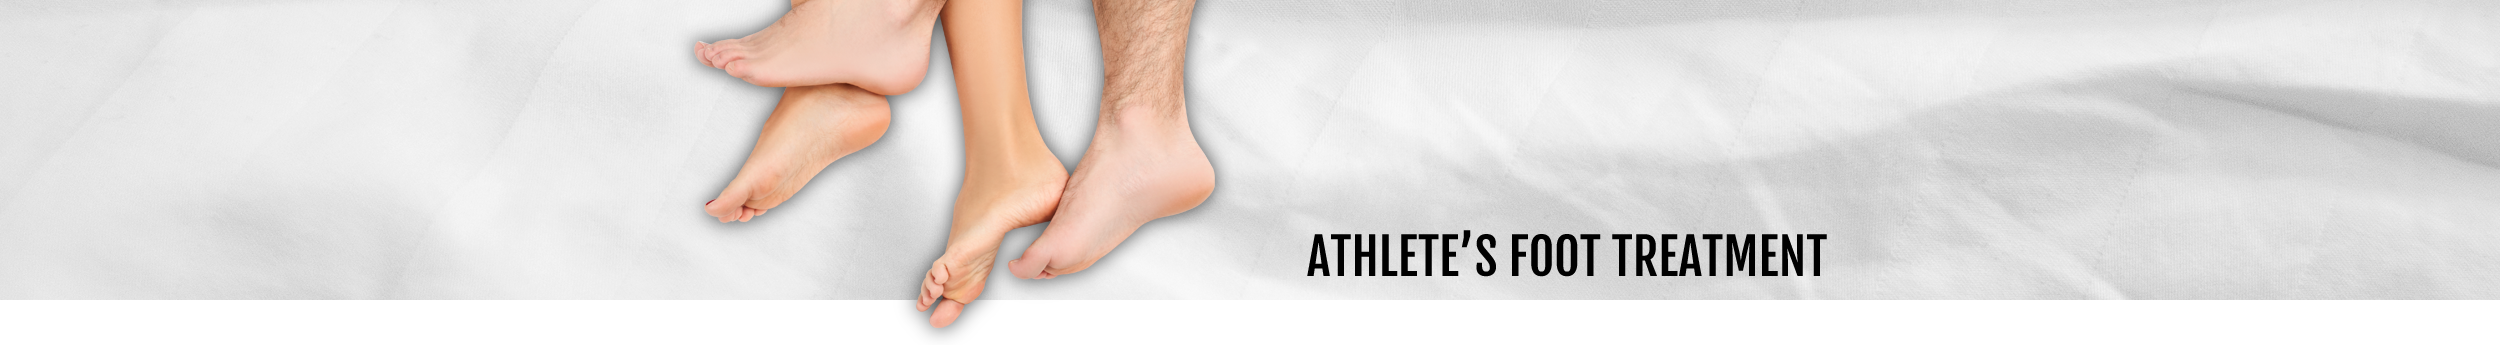 Athlete's Foot treatment header for the Walk IN Foot Clinic in central London